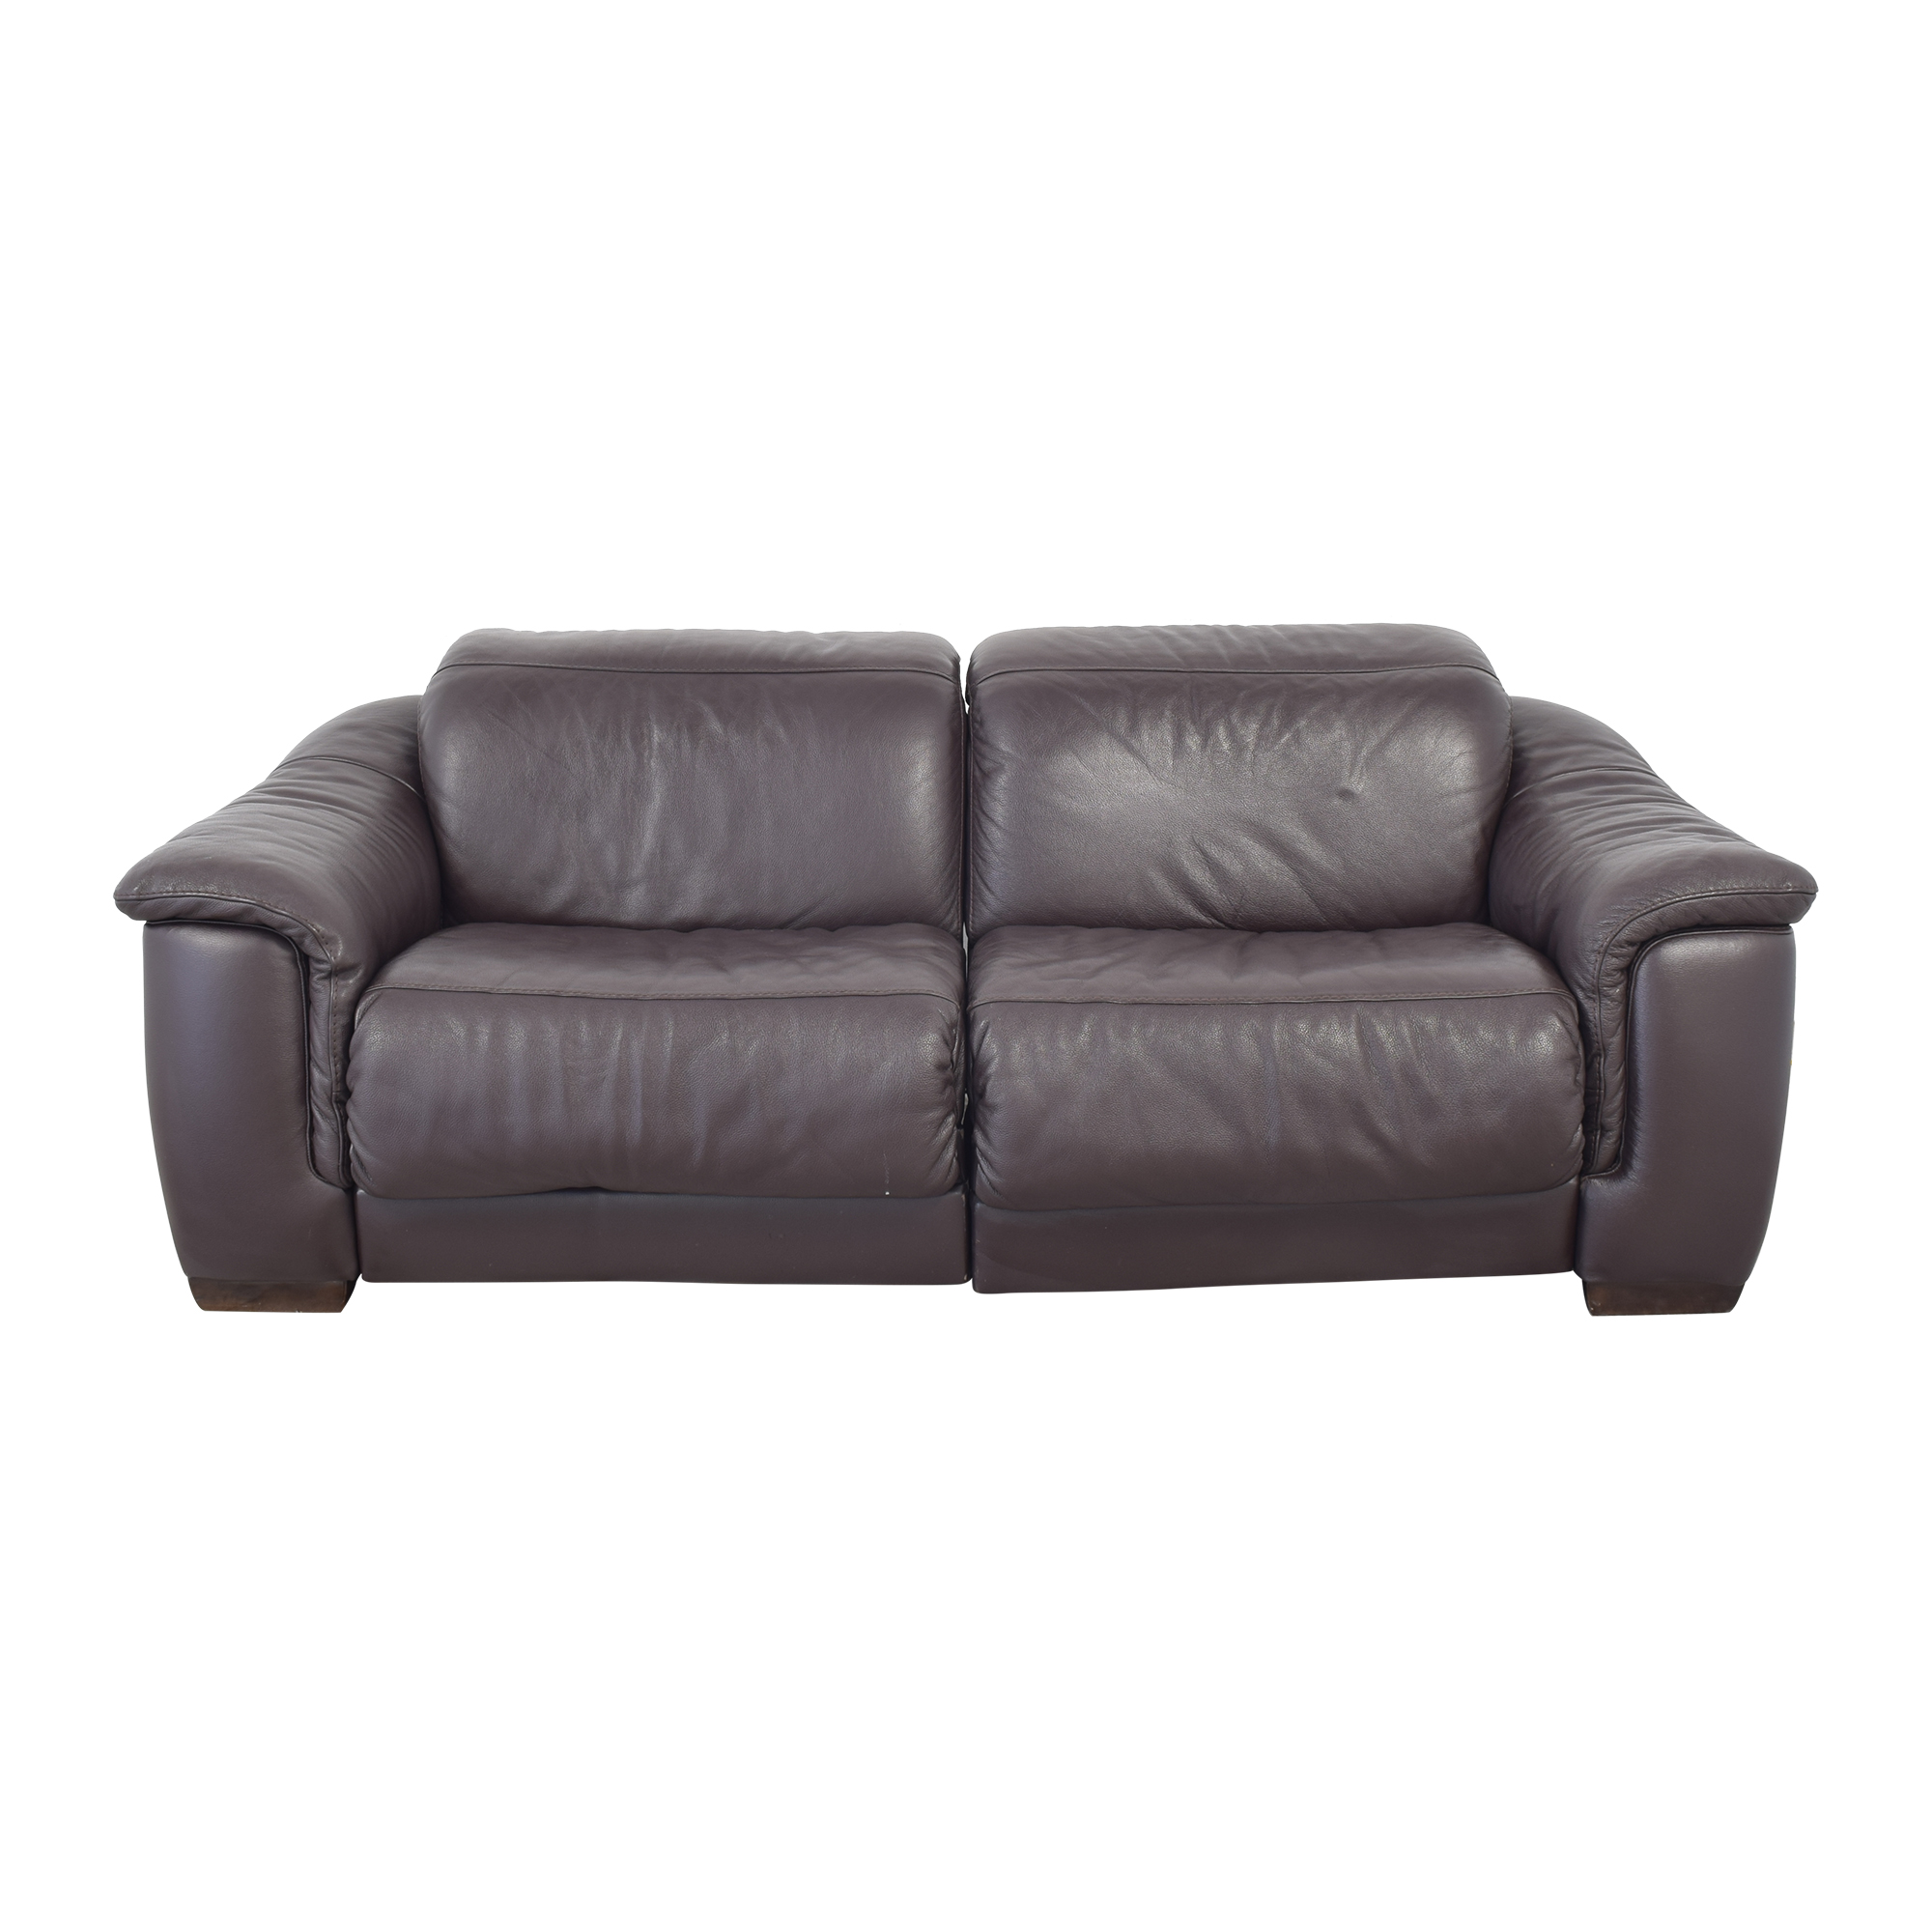 Macy's Macy's Natuzzi Two Cushion Reclining Sofa dark brown